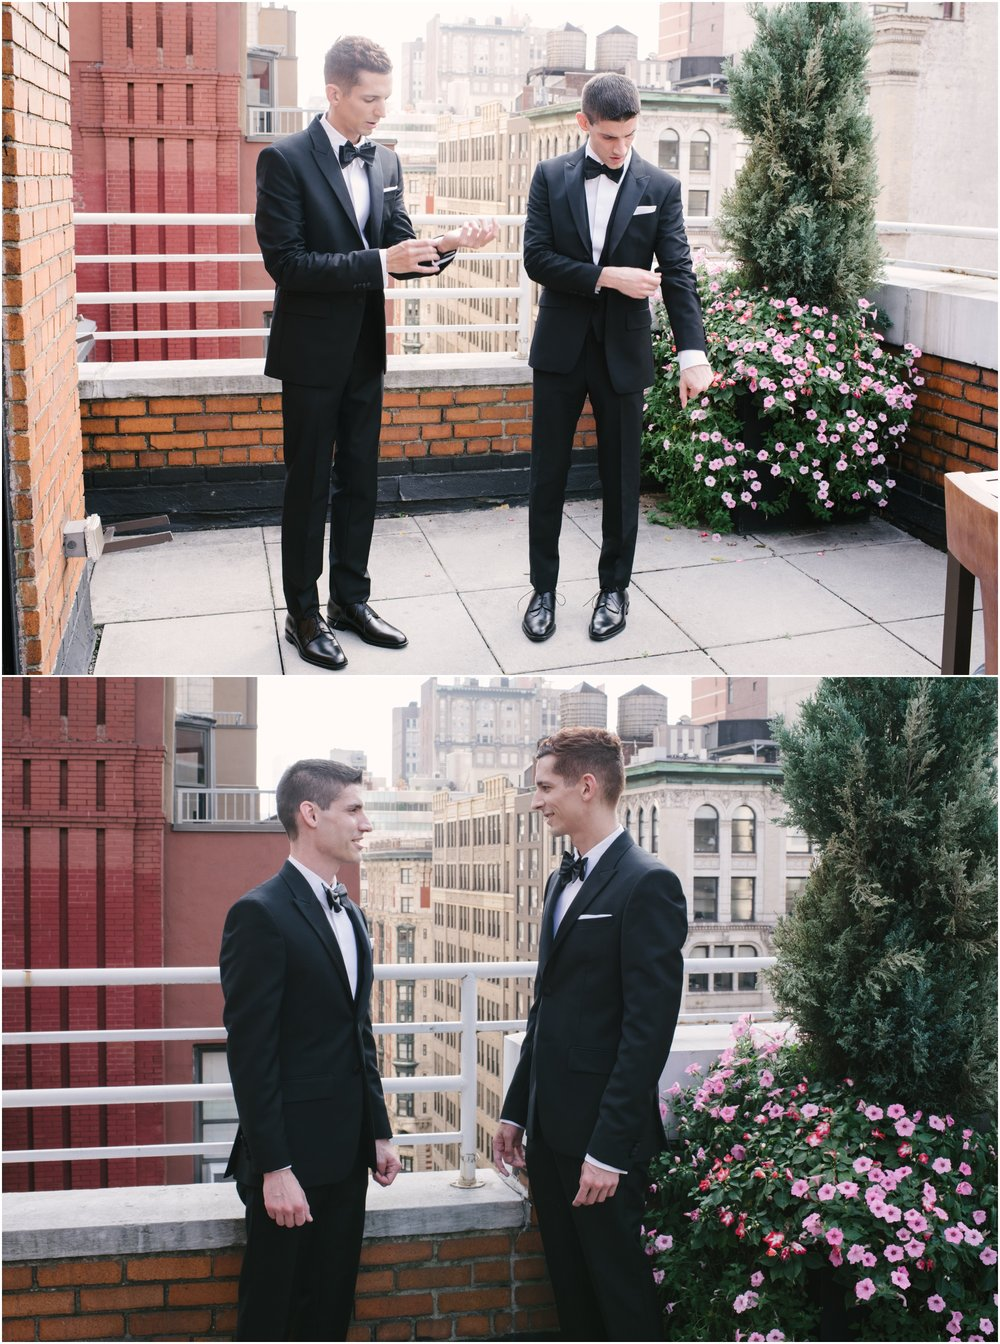 gay-wedding-photographer-williamsburgphotostudios-thefoundry-wedding-photographer_0019.jpg